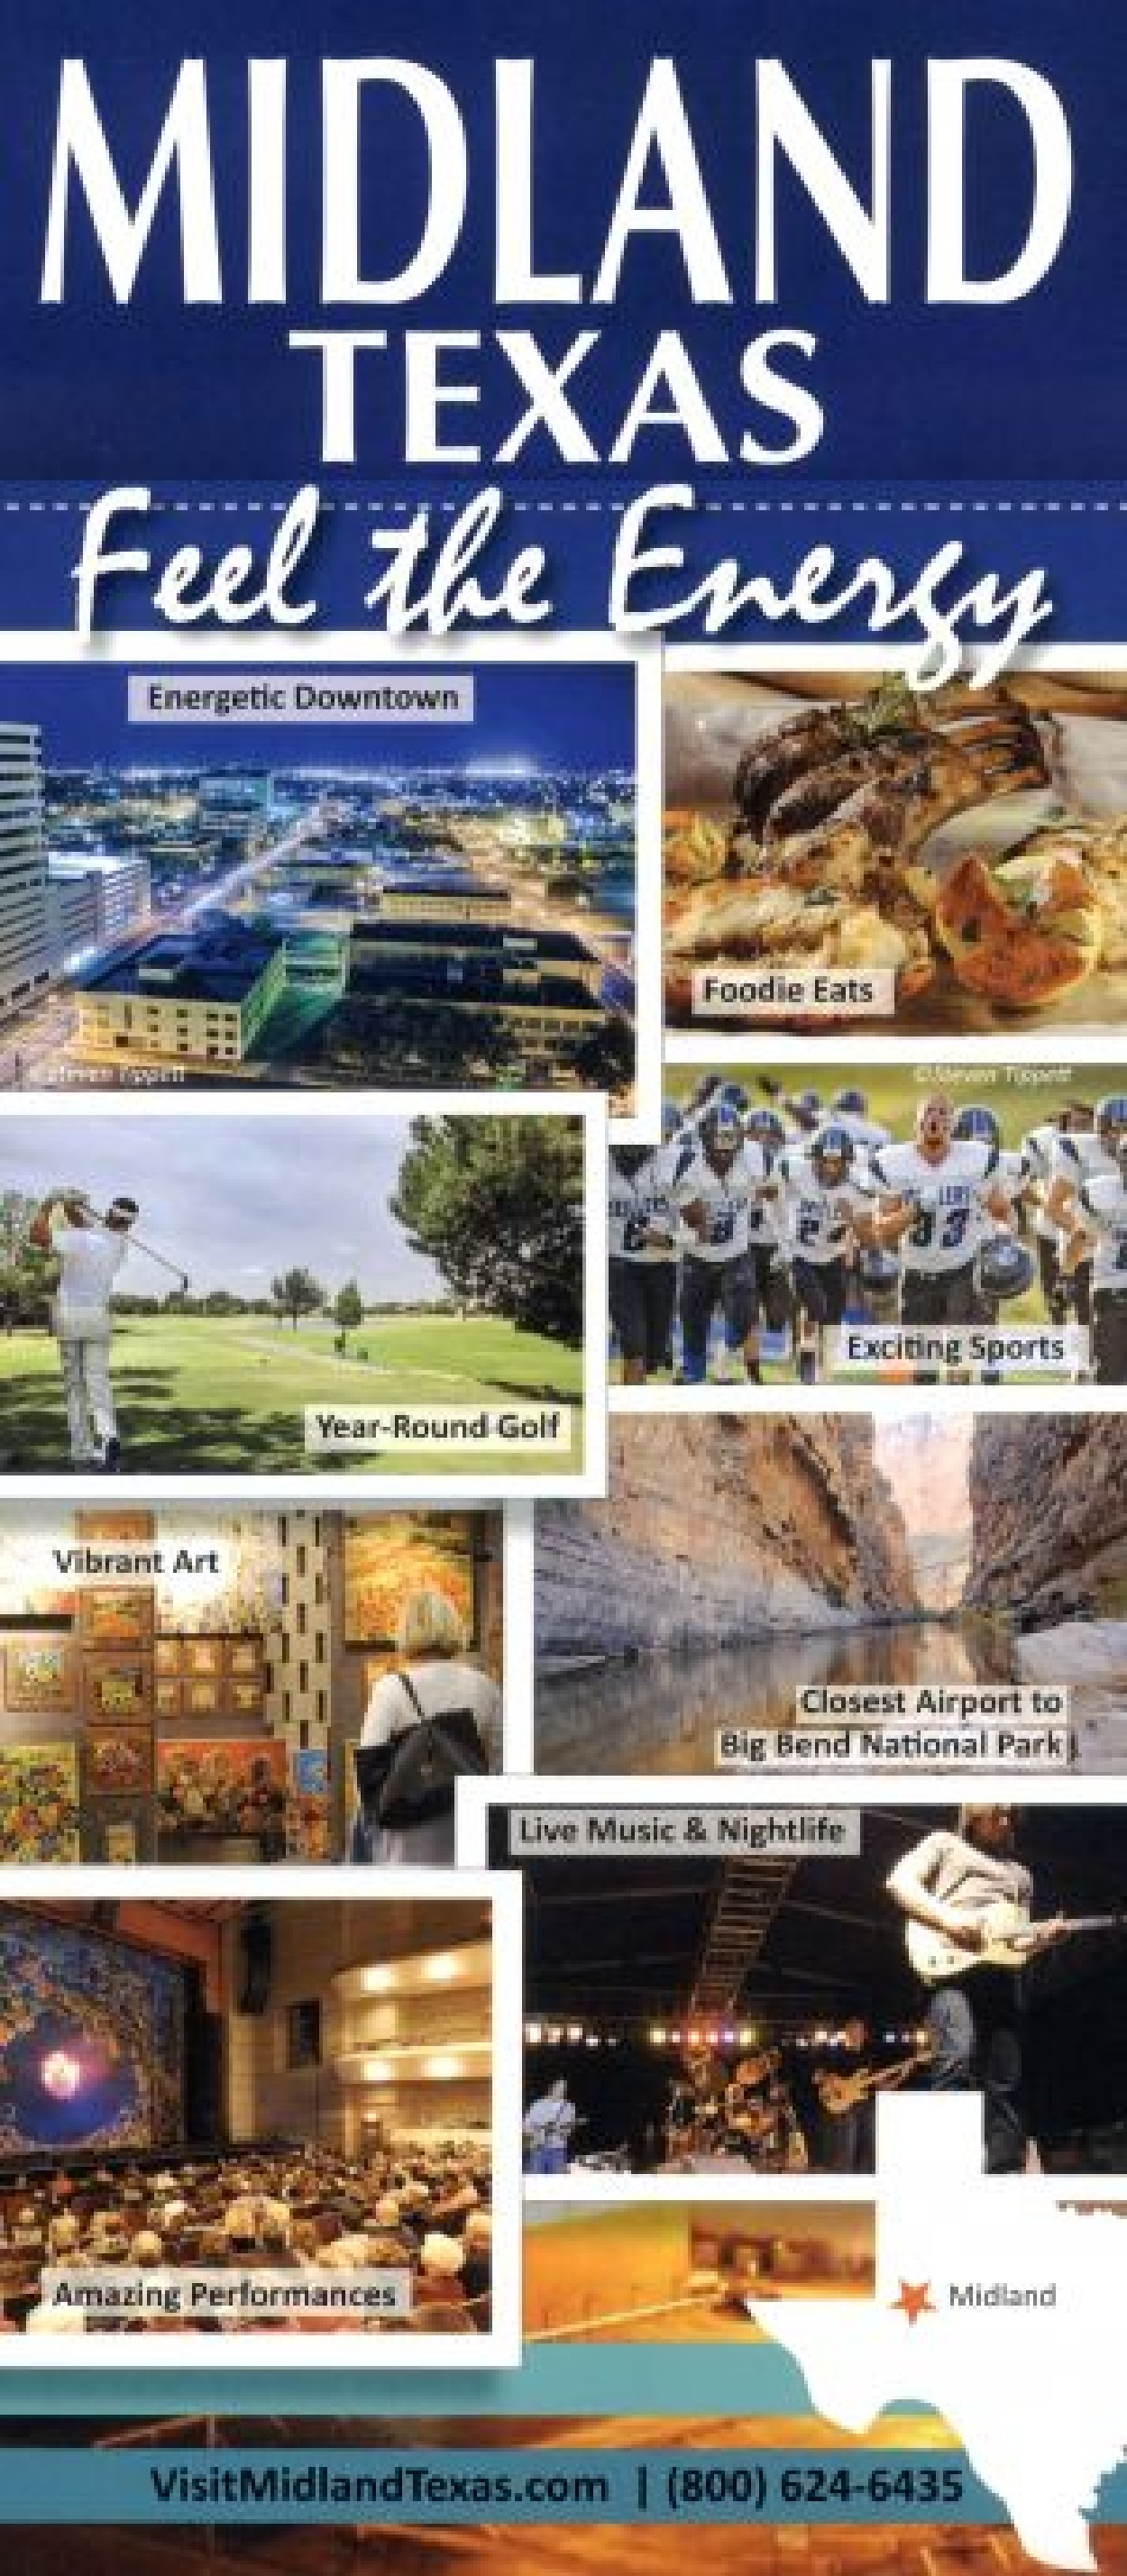 brochure_2286-00 City Of Midland Maps on map of greensboro, map of new hope, map of decatur, map of clanton, map of lincoln, map of asheville, map of jasper, map of piedmont, map of northport, map of downtown san antonio, map of thomasville, map of greenville, map of huntsville, map of gila county, map of houston metropolitan area, map of maxwell afb, map of downtown richmond, map of town creek, map of oxford, map of orange beach,